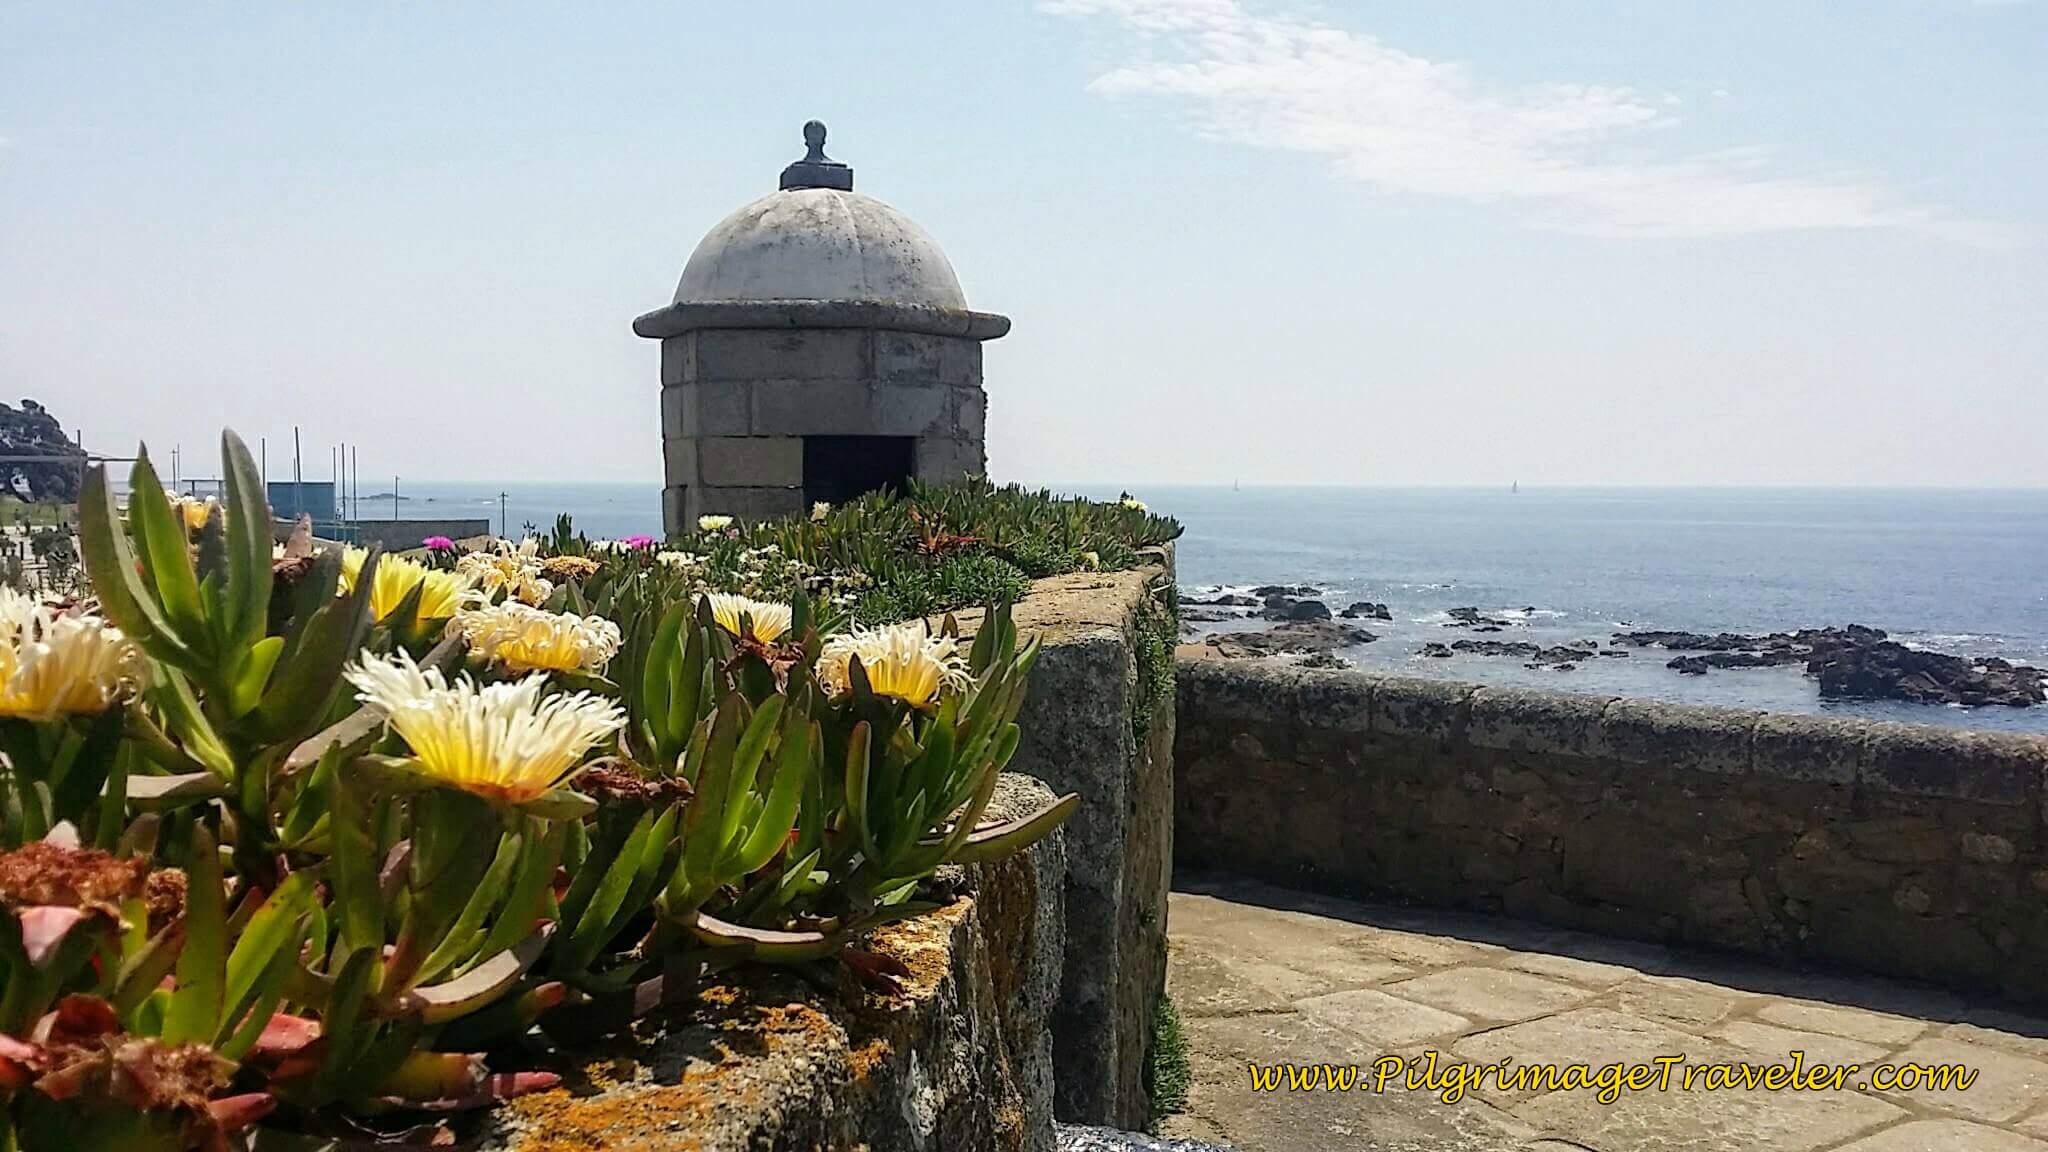 Gorgeous Yellow Flower and Sentry House at the Castelo do Queijo in Porto, Portugal